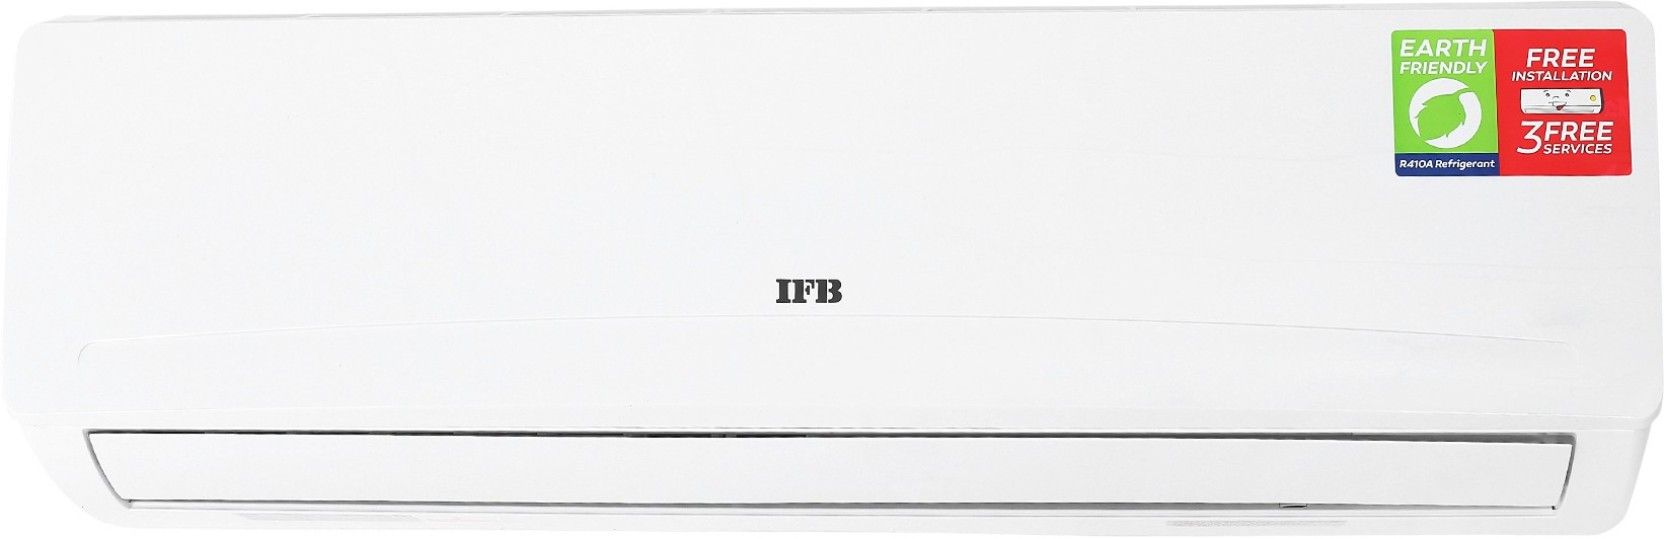 Buy Ifb 15 Ton 3 Star Bee Rating 2018 Split Ac Oxone 1080 Professional Pressure Cooker Add To Cart